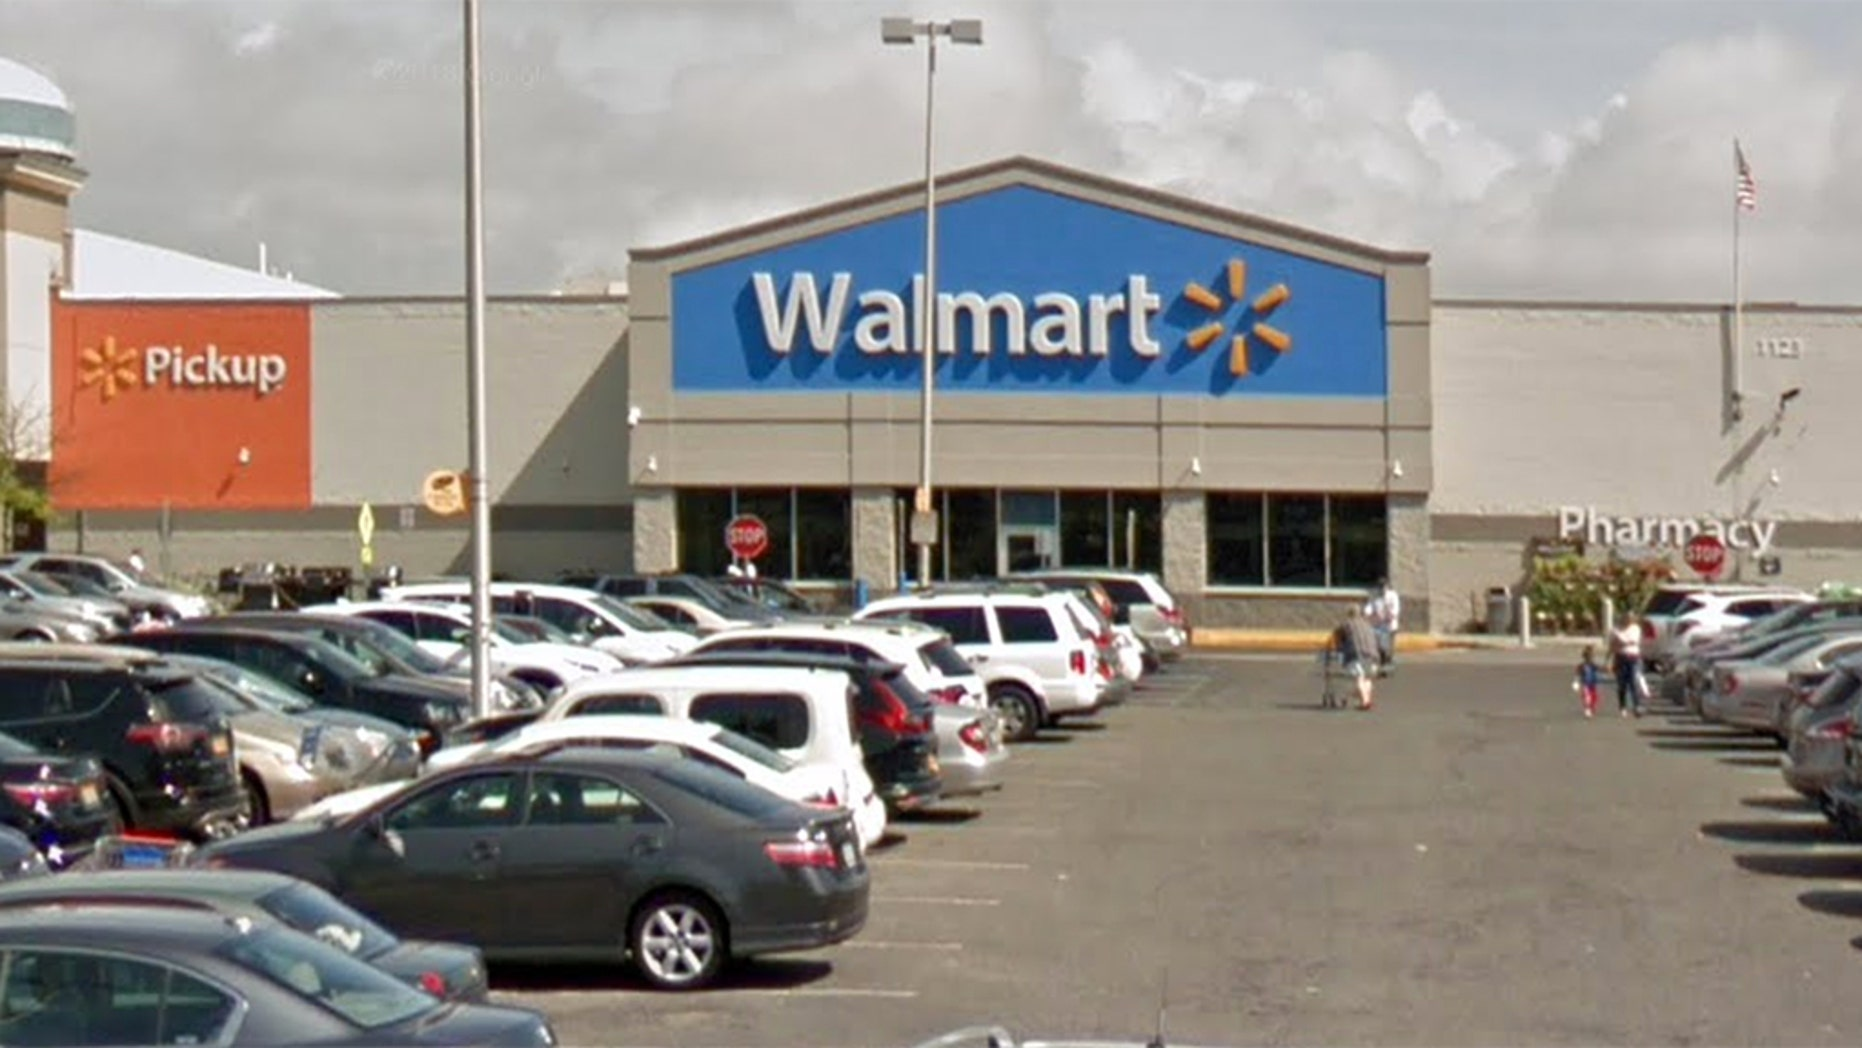 The Christmas season was probably brightening for some Walmart shoppers in New York after an unidentified person took over the cost of all the items they were escaping, the shop noted.